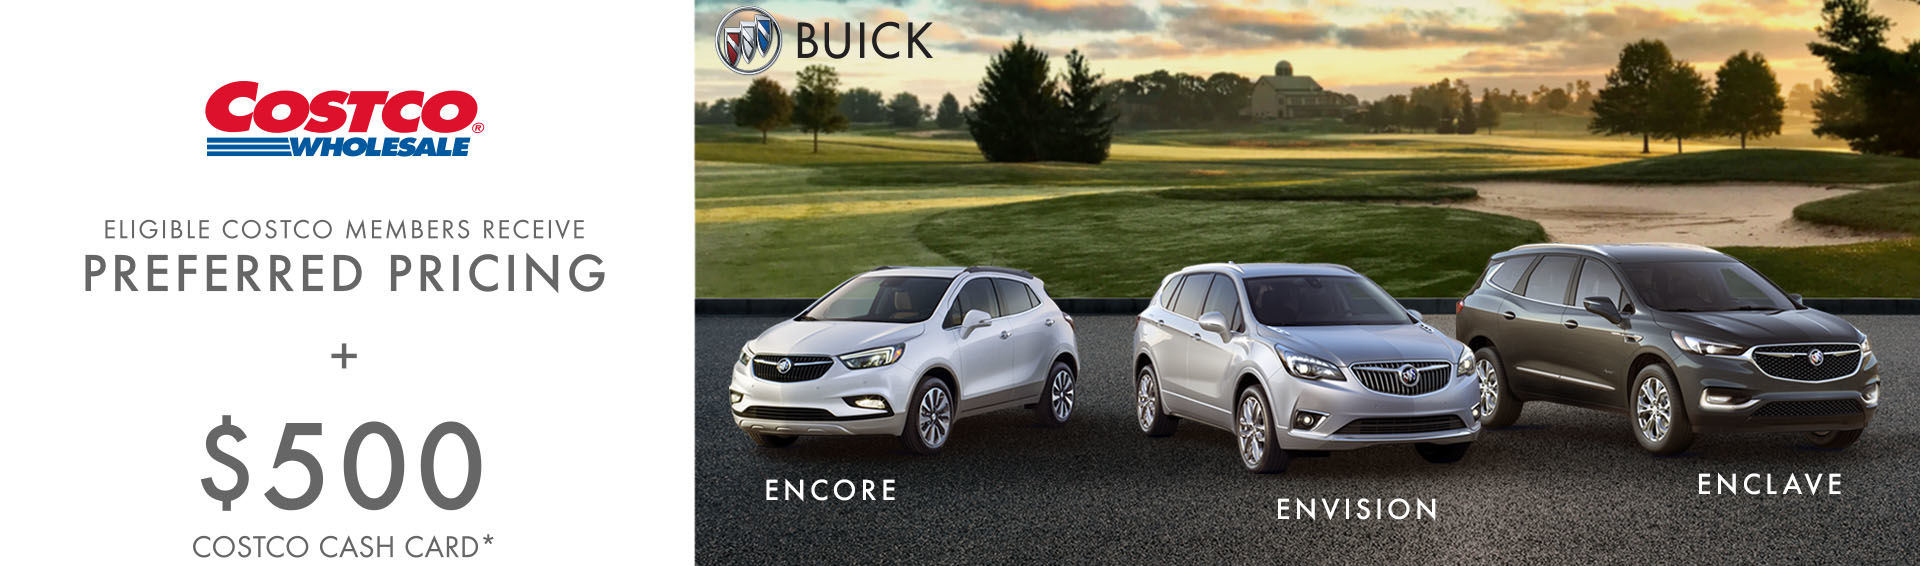 Promotion July Buick